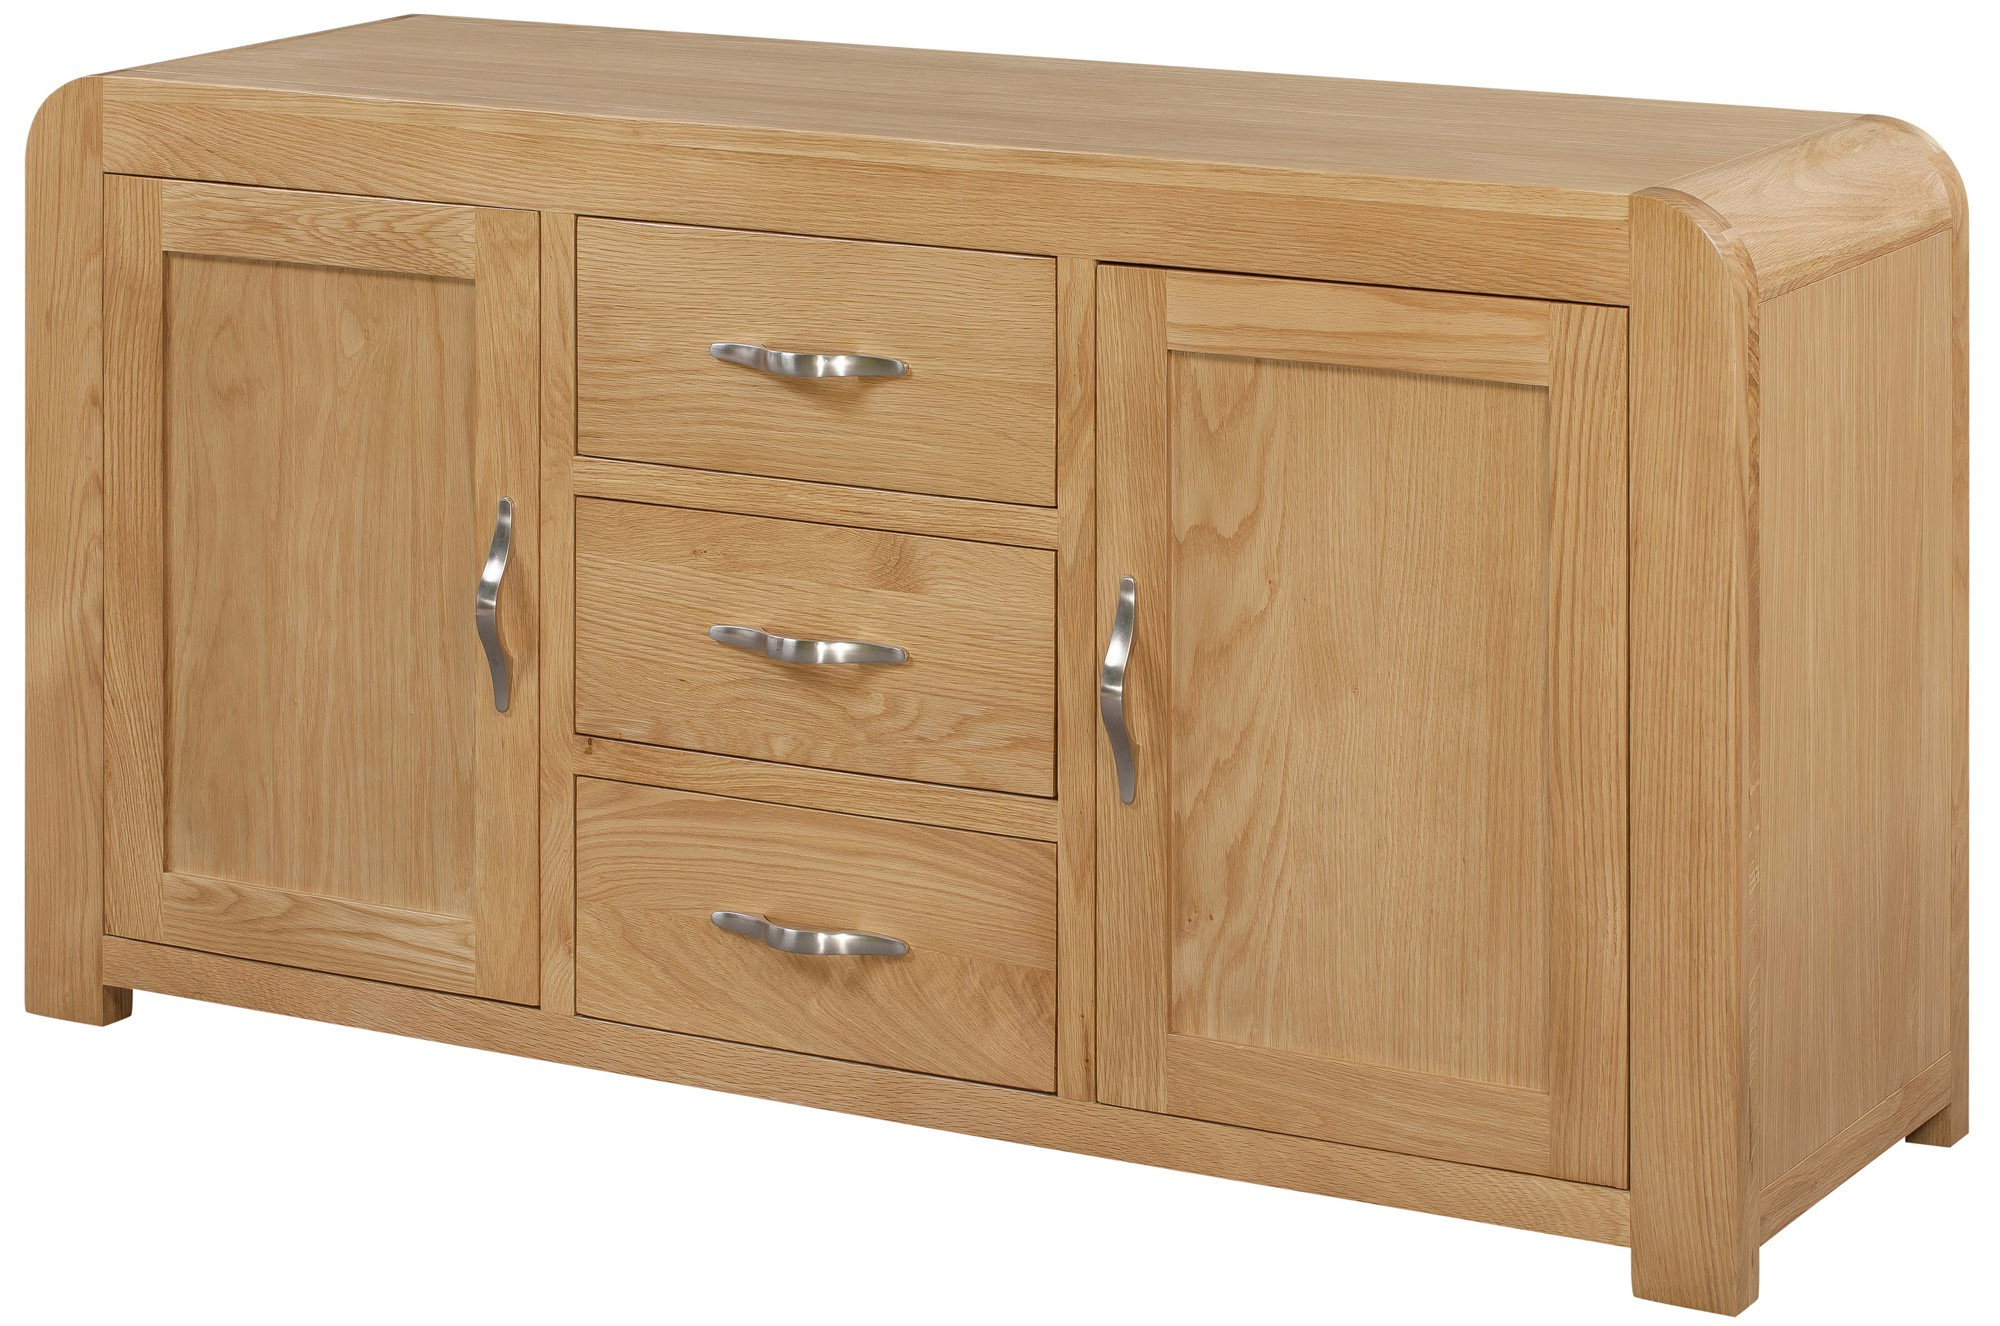 Well Liked Venice Sideboard With 2 Doors & 3 Drawers – Venice Oak Range – Shop Regarding Walnut Finish 2 Door/3 Drawer Sideboards (View 19 of 20)